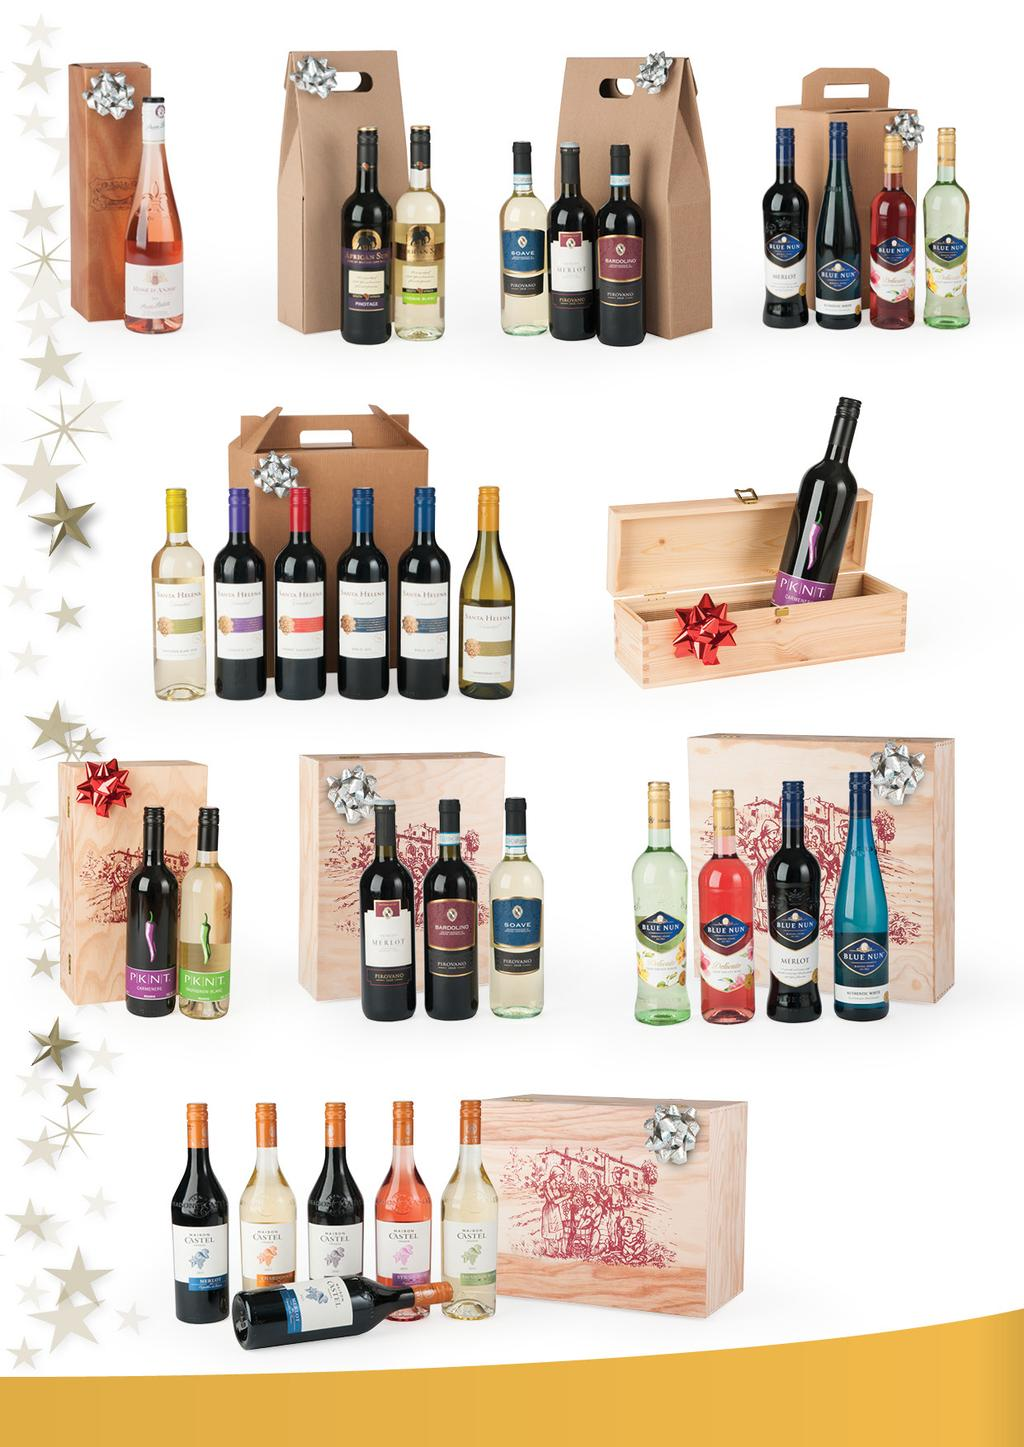 6.00 9.50 15.00 24.50 020 021 022 Wines in Carton Gift Packs 023 28.00 12.